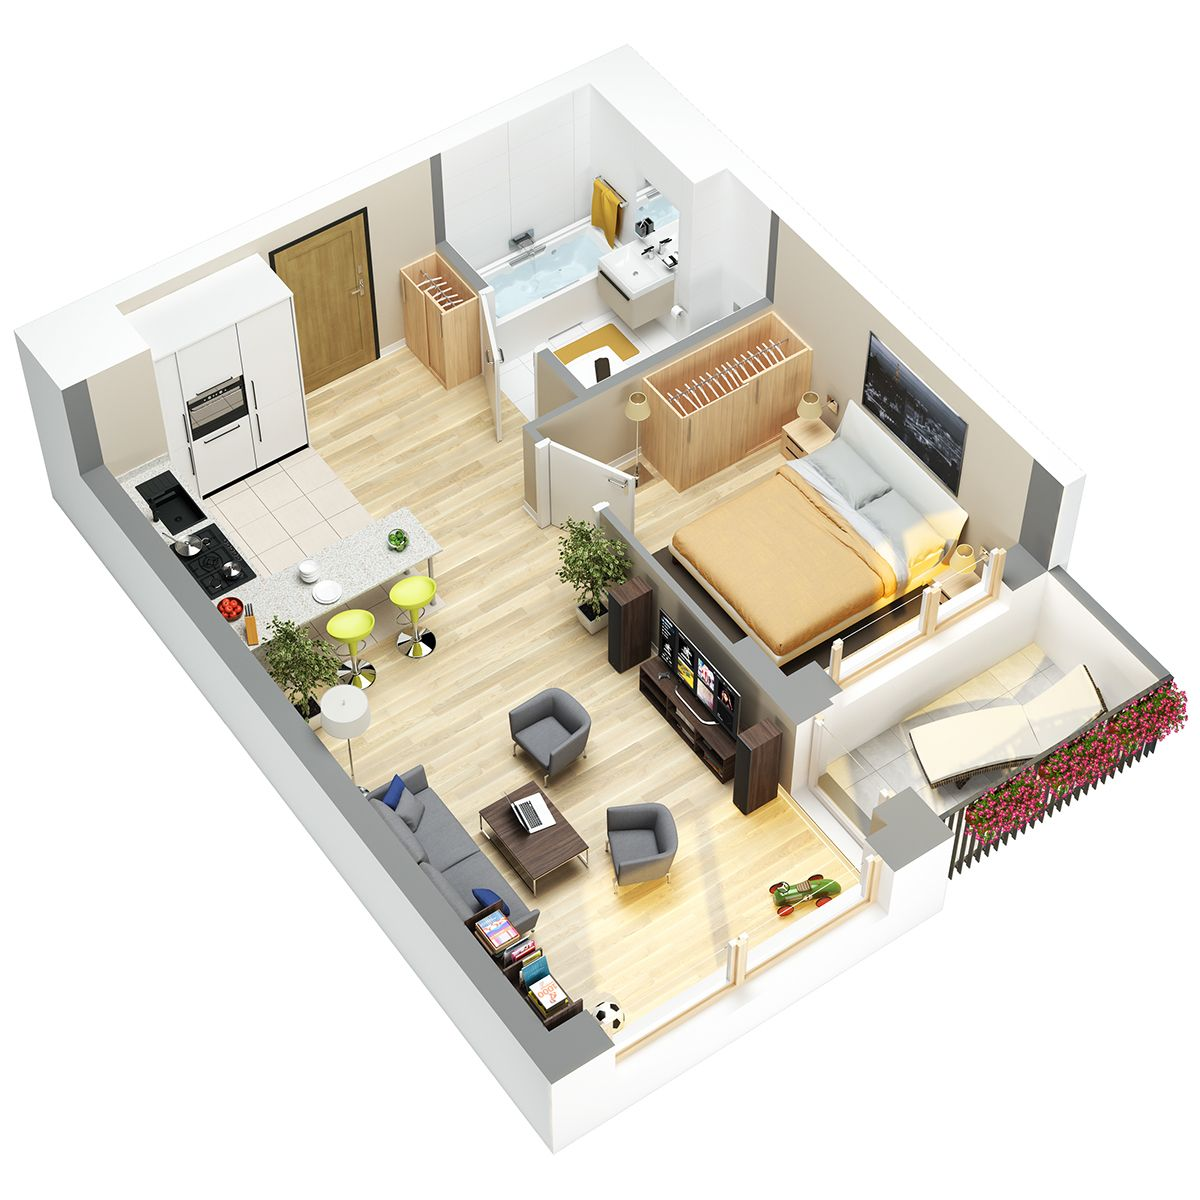 3D floor plans of flats. | Small house plans, Studio ...